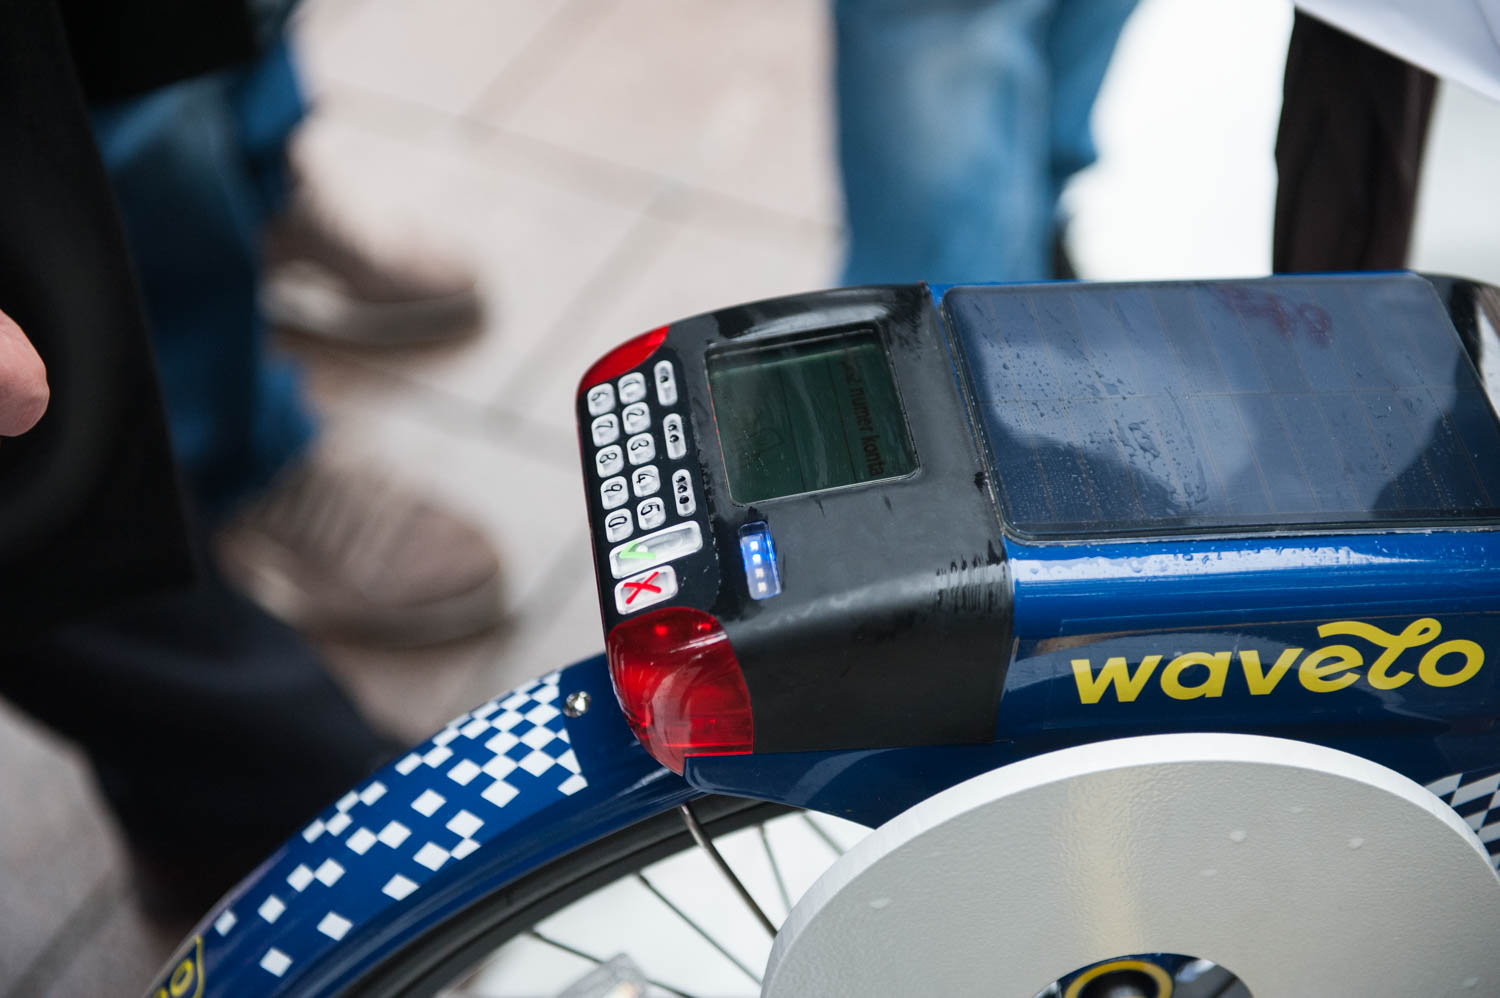 Wavelo Bike Rental Expanding in Krakow